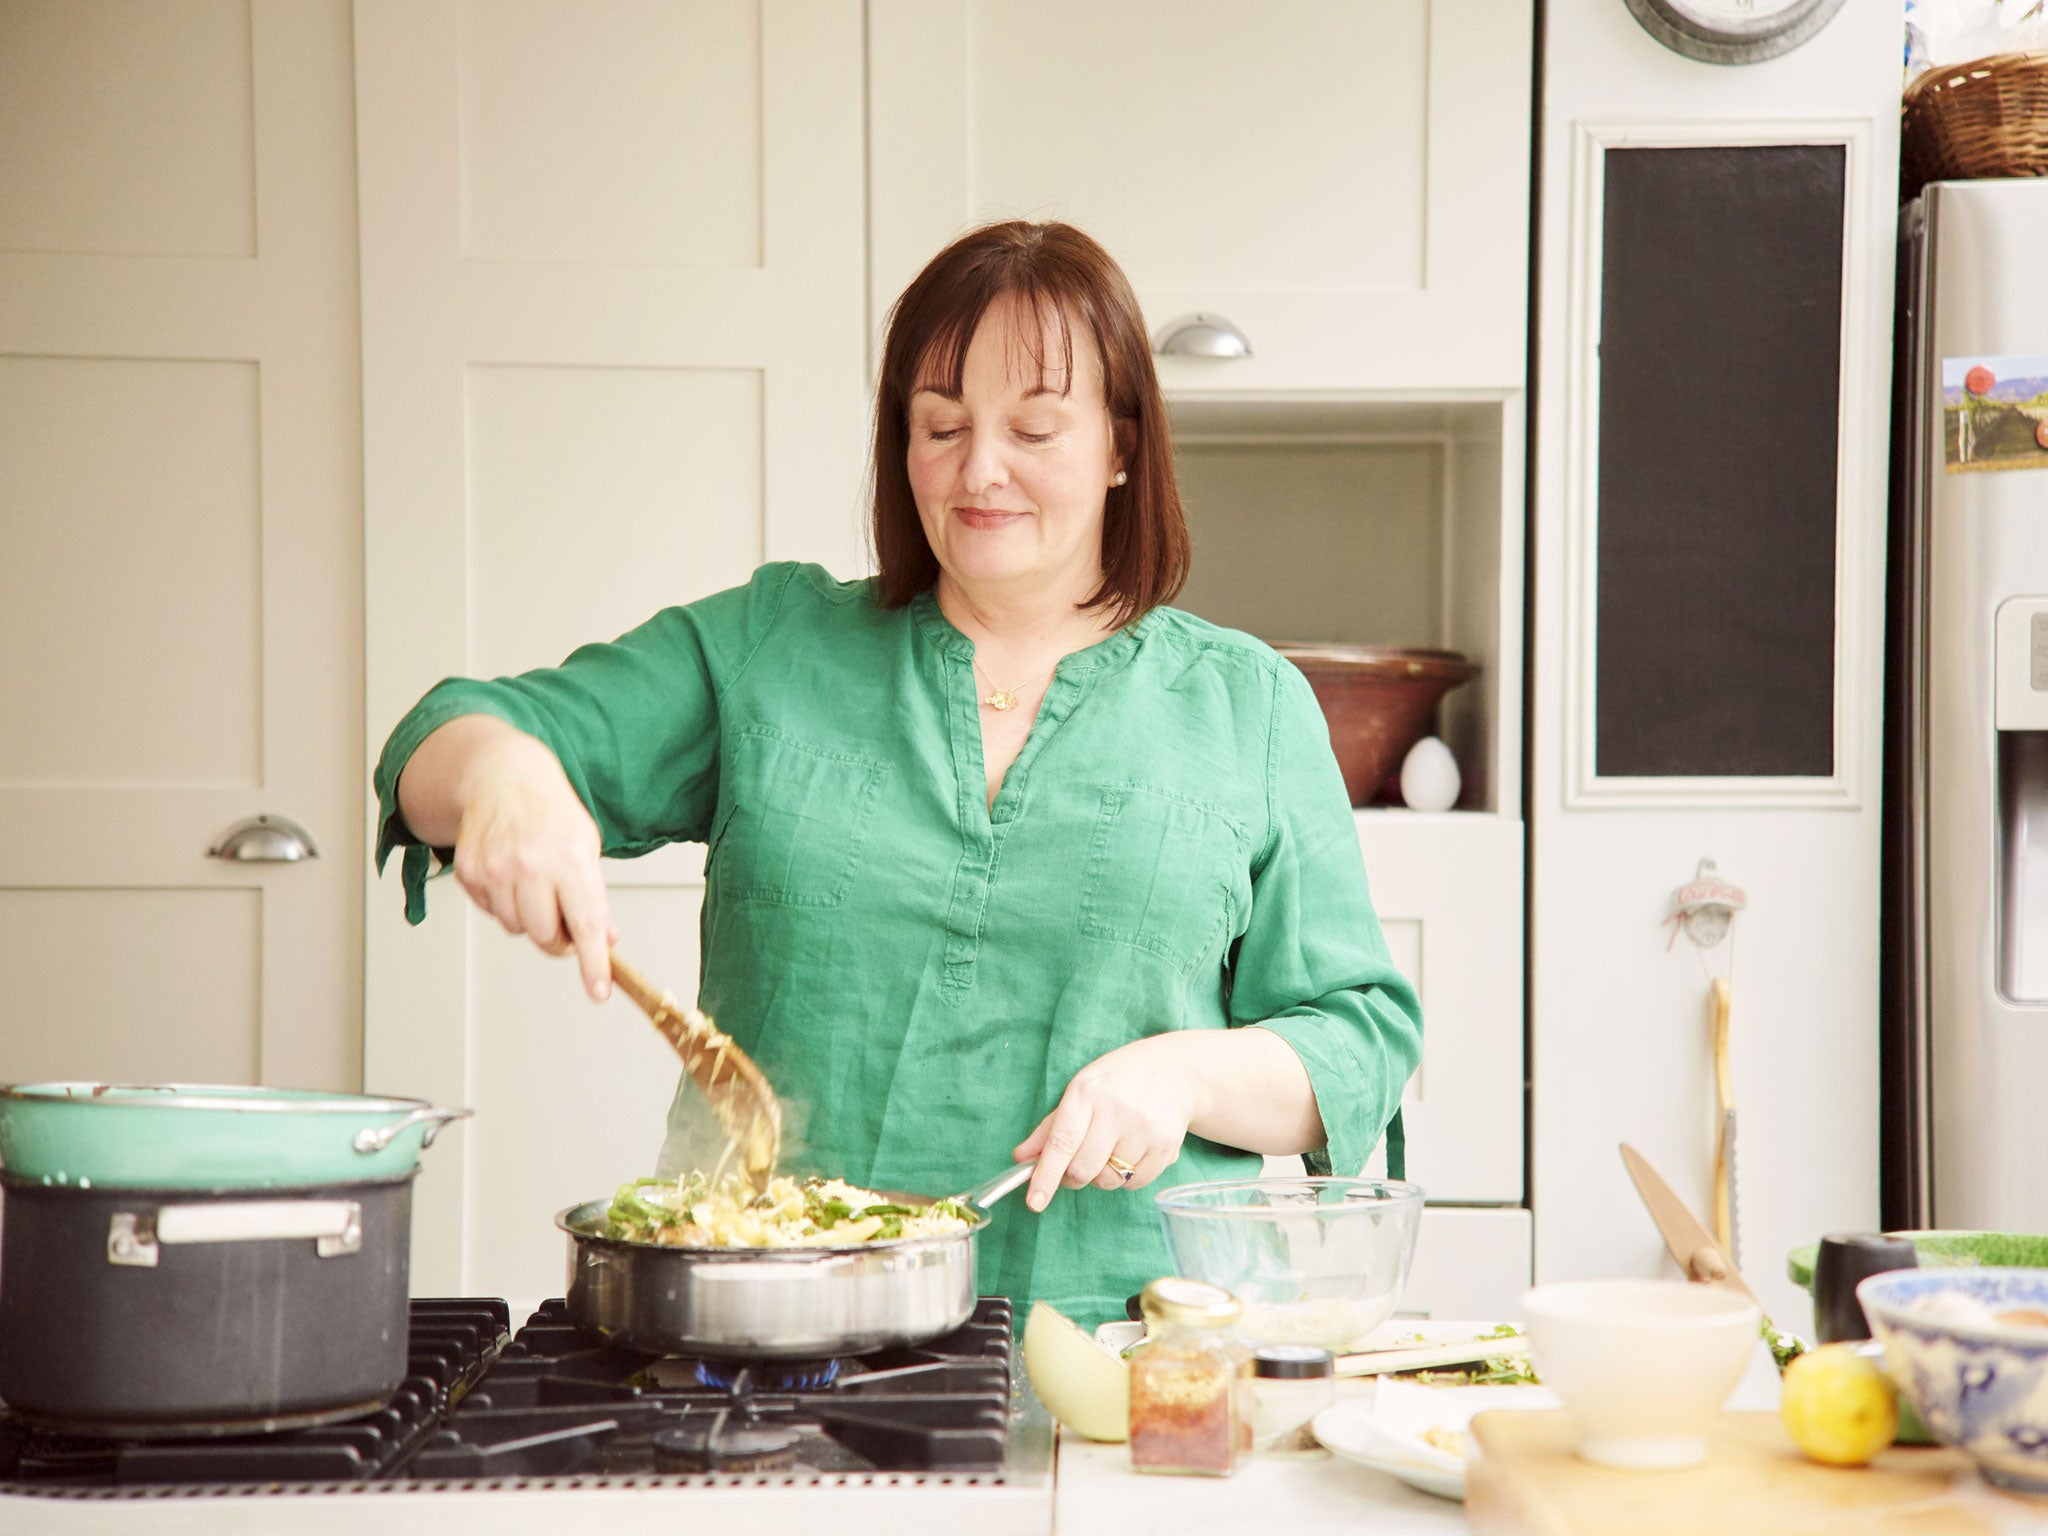 Debora Robertson recipes: Our new guest food writer shares some of her favourite quick dishes